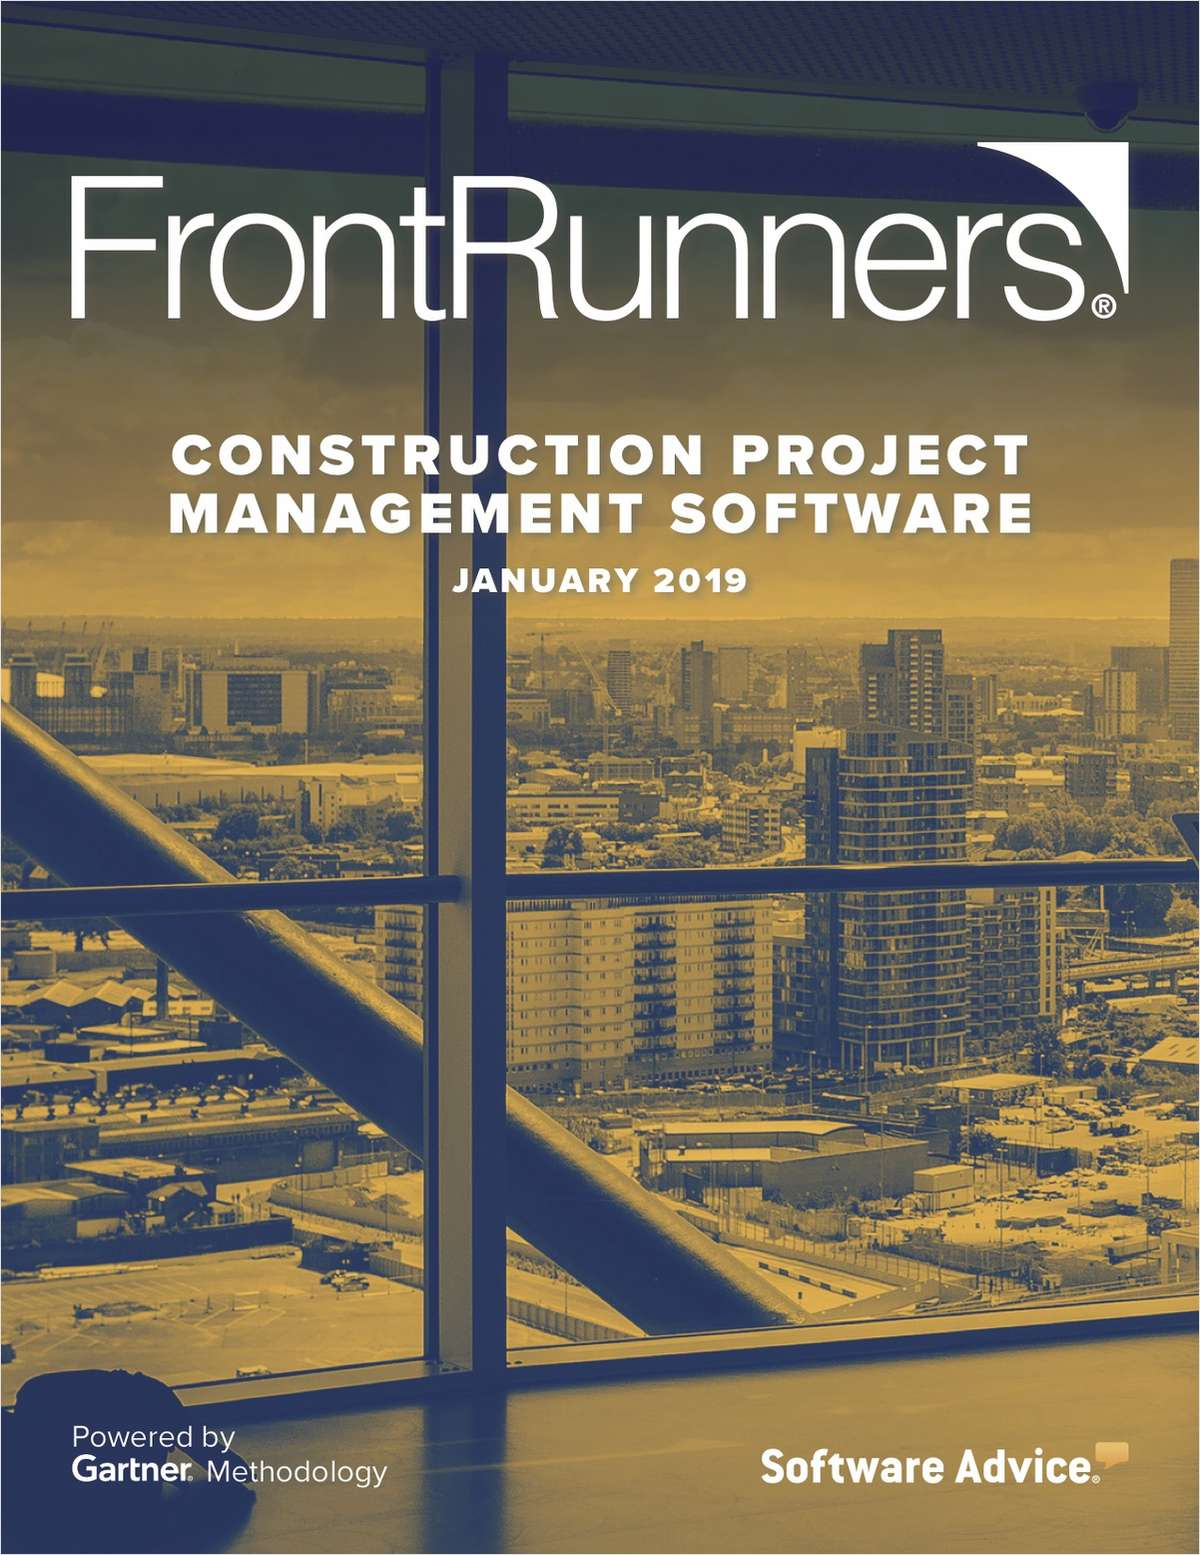 Top Rated FrontRunners for 2019 Construction Project Management Software